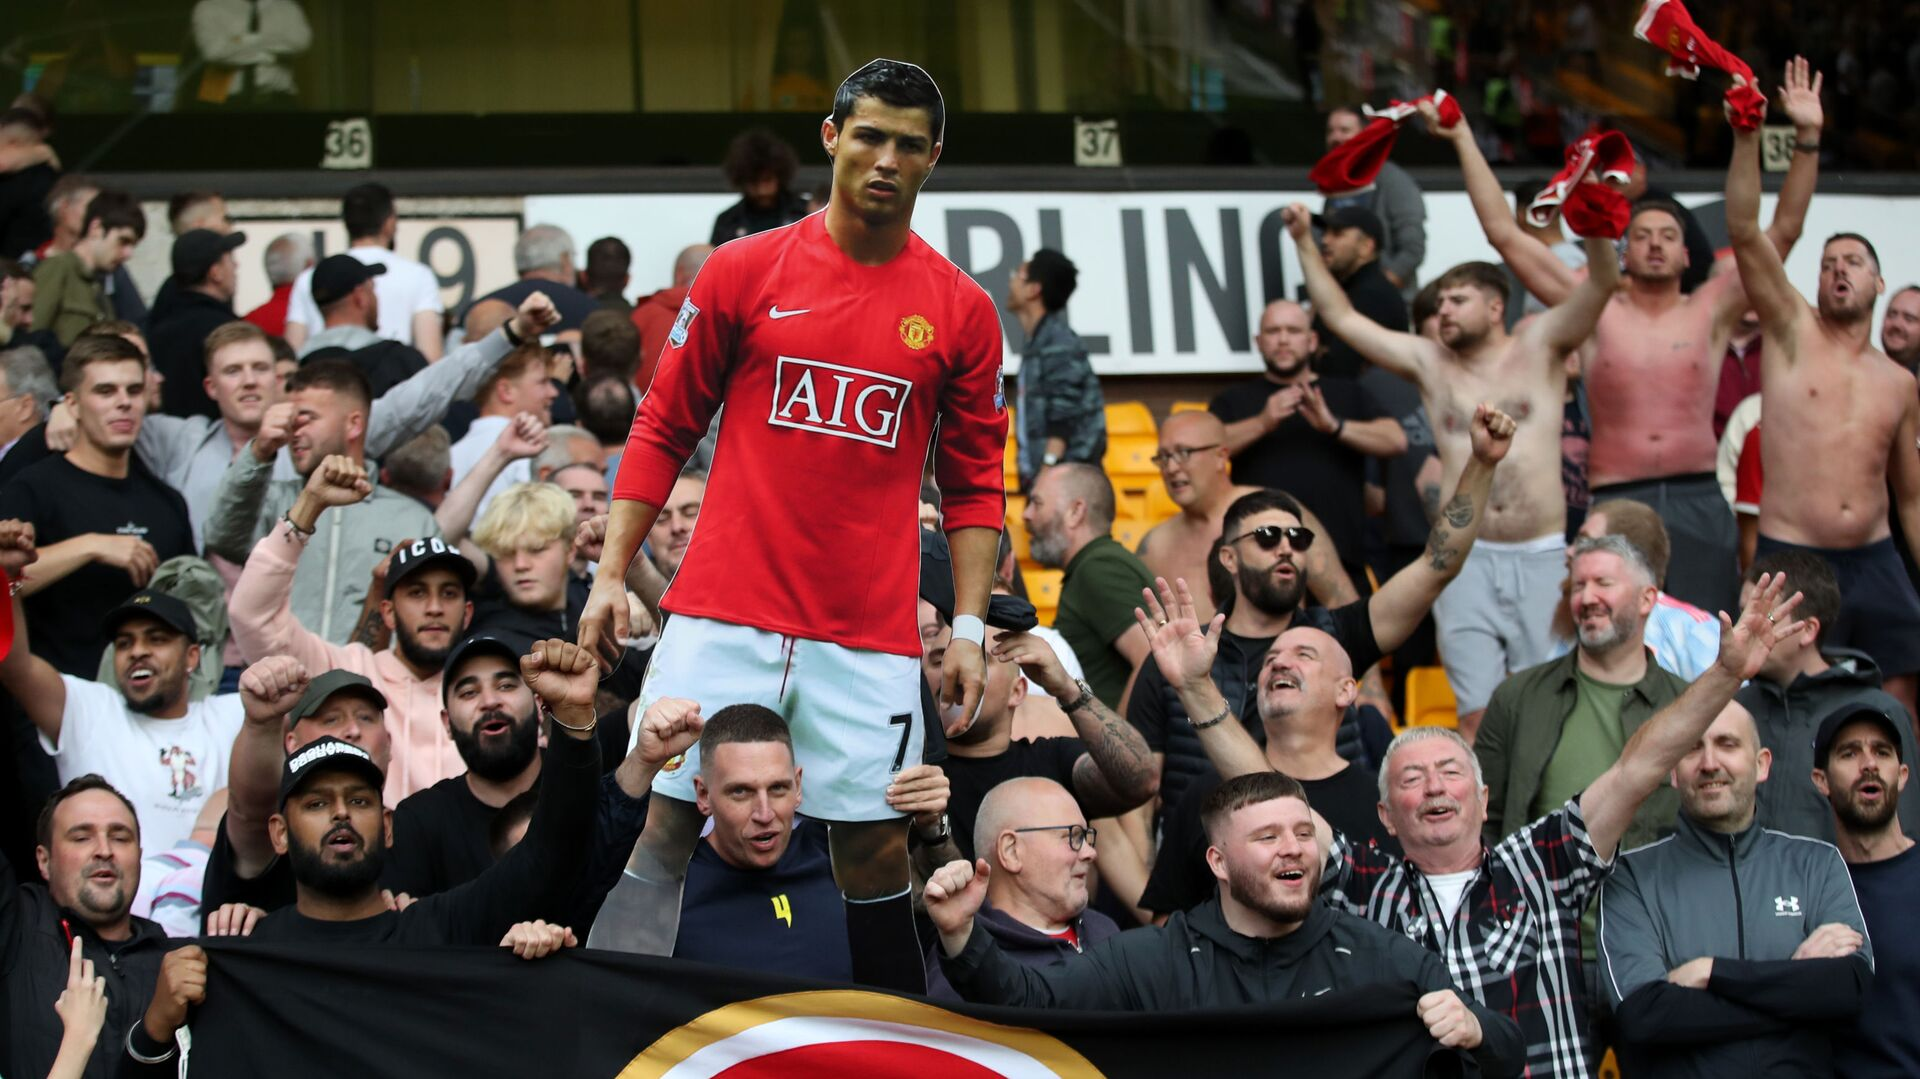 Manchester United fans celebrate with a cardboard cut out of Cristiano Ronaldo after the match - Sputnik International, 1920, 10.09.2021